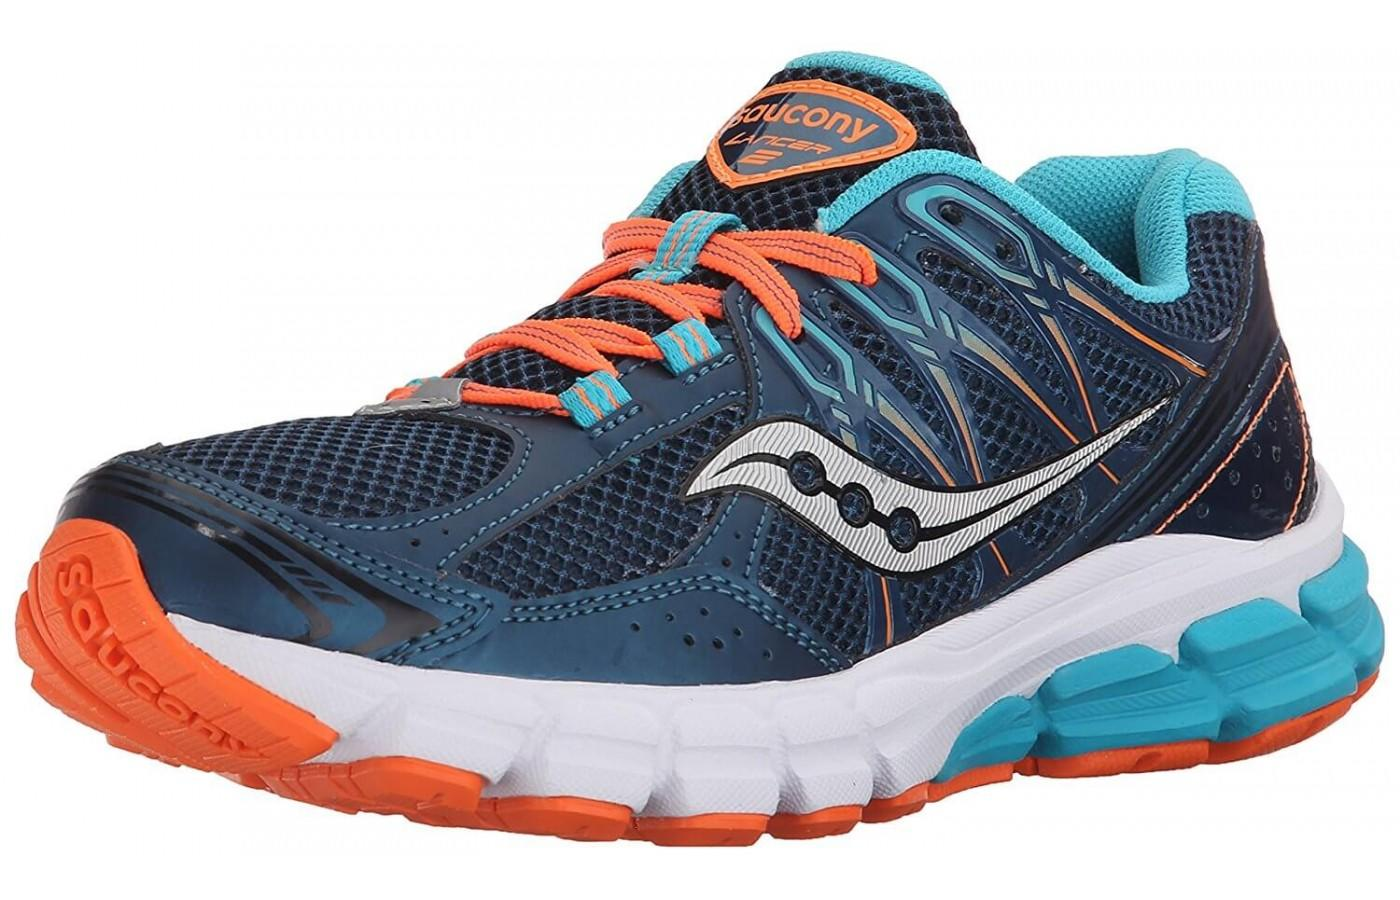 Saucony Lancer 2 is a lightweight neutral shoe